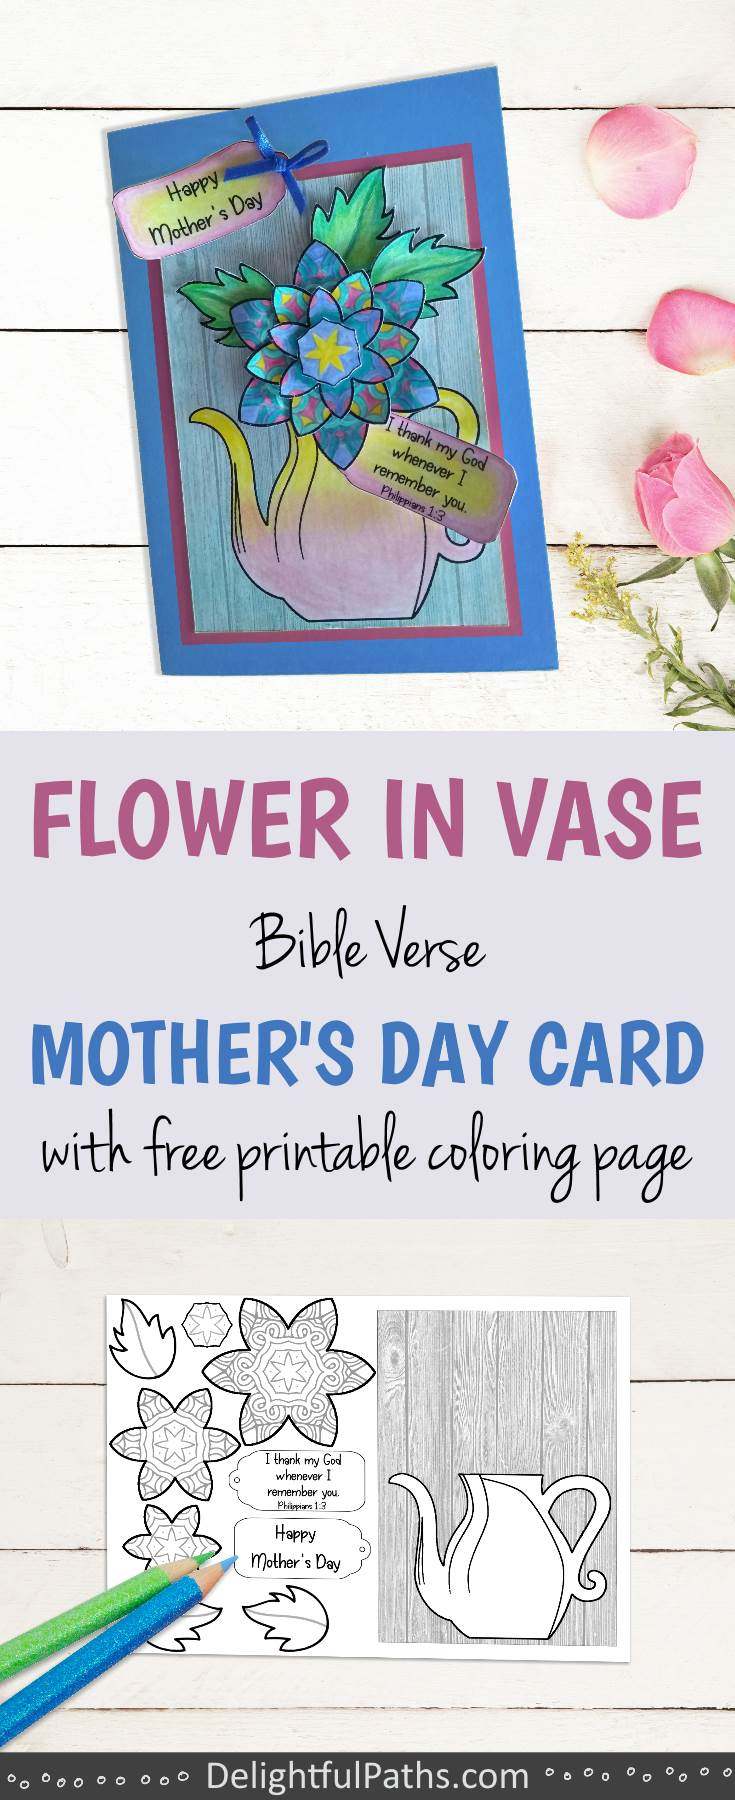 3D flower in vase mothers day coloring card with free template to download - DelightfulPaths